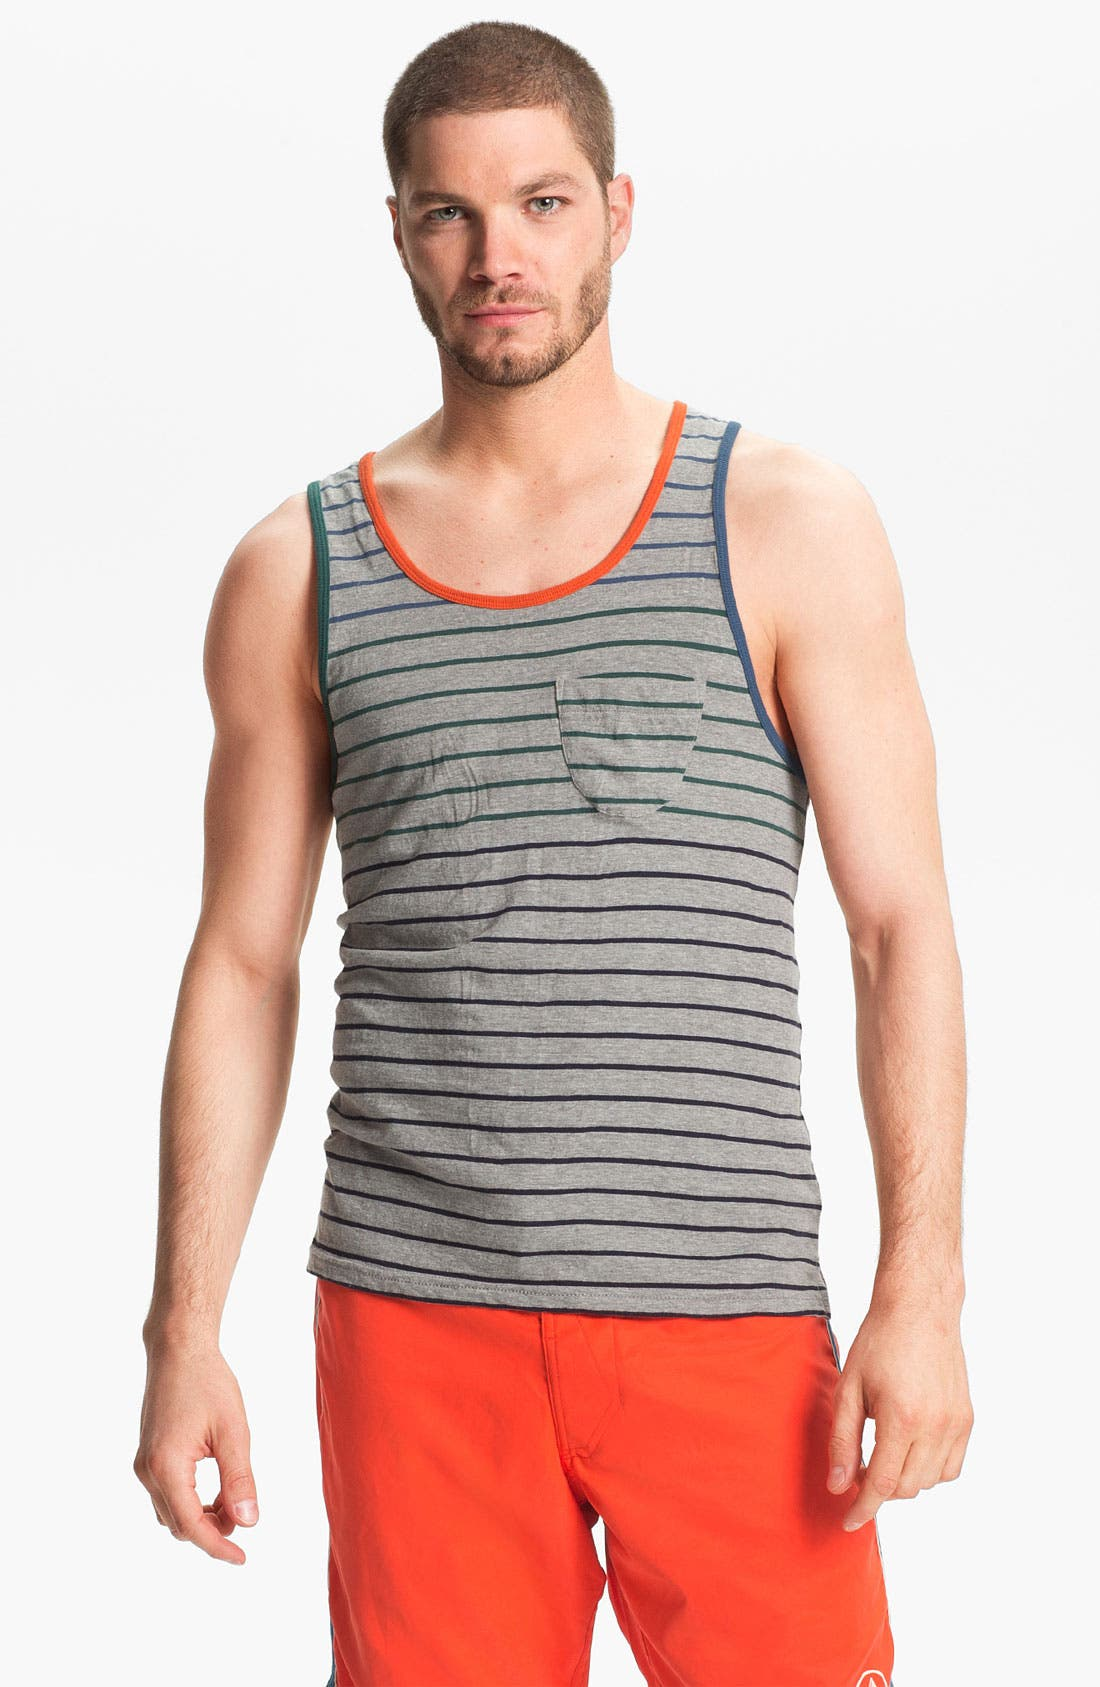 Alternate Image 1 Selected - Burkman Bros Stripe Tank Top